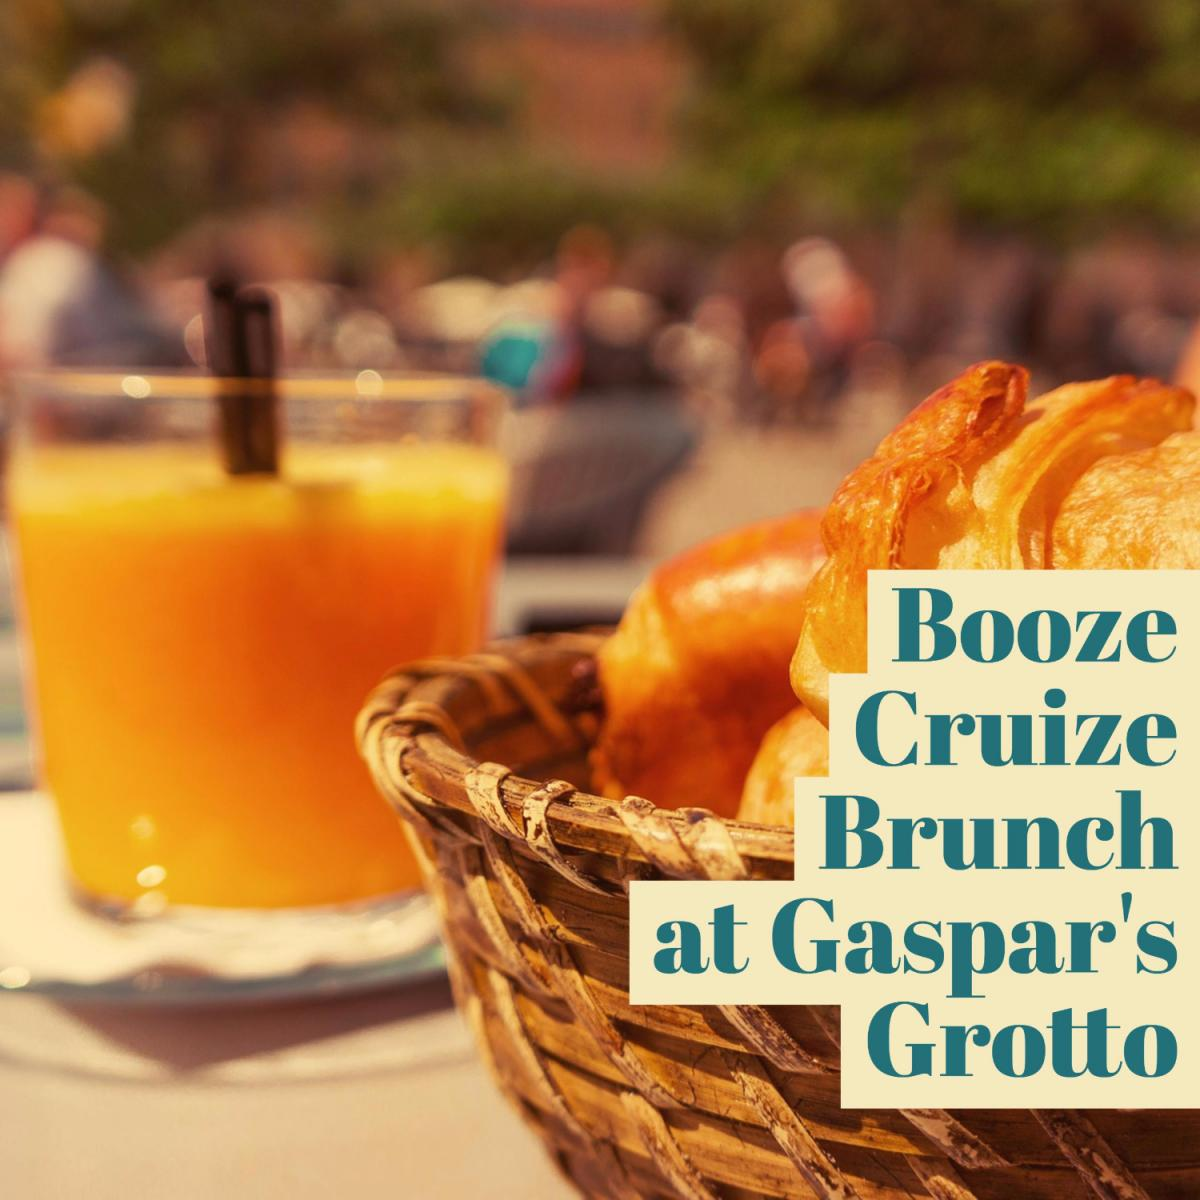 Booze Cruize Brunch at Gaspar's Grotto in Ybor City